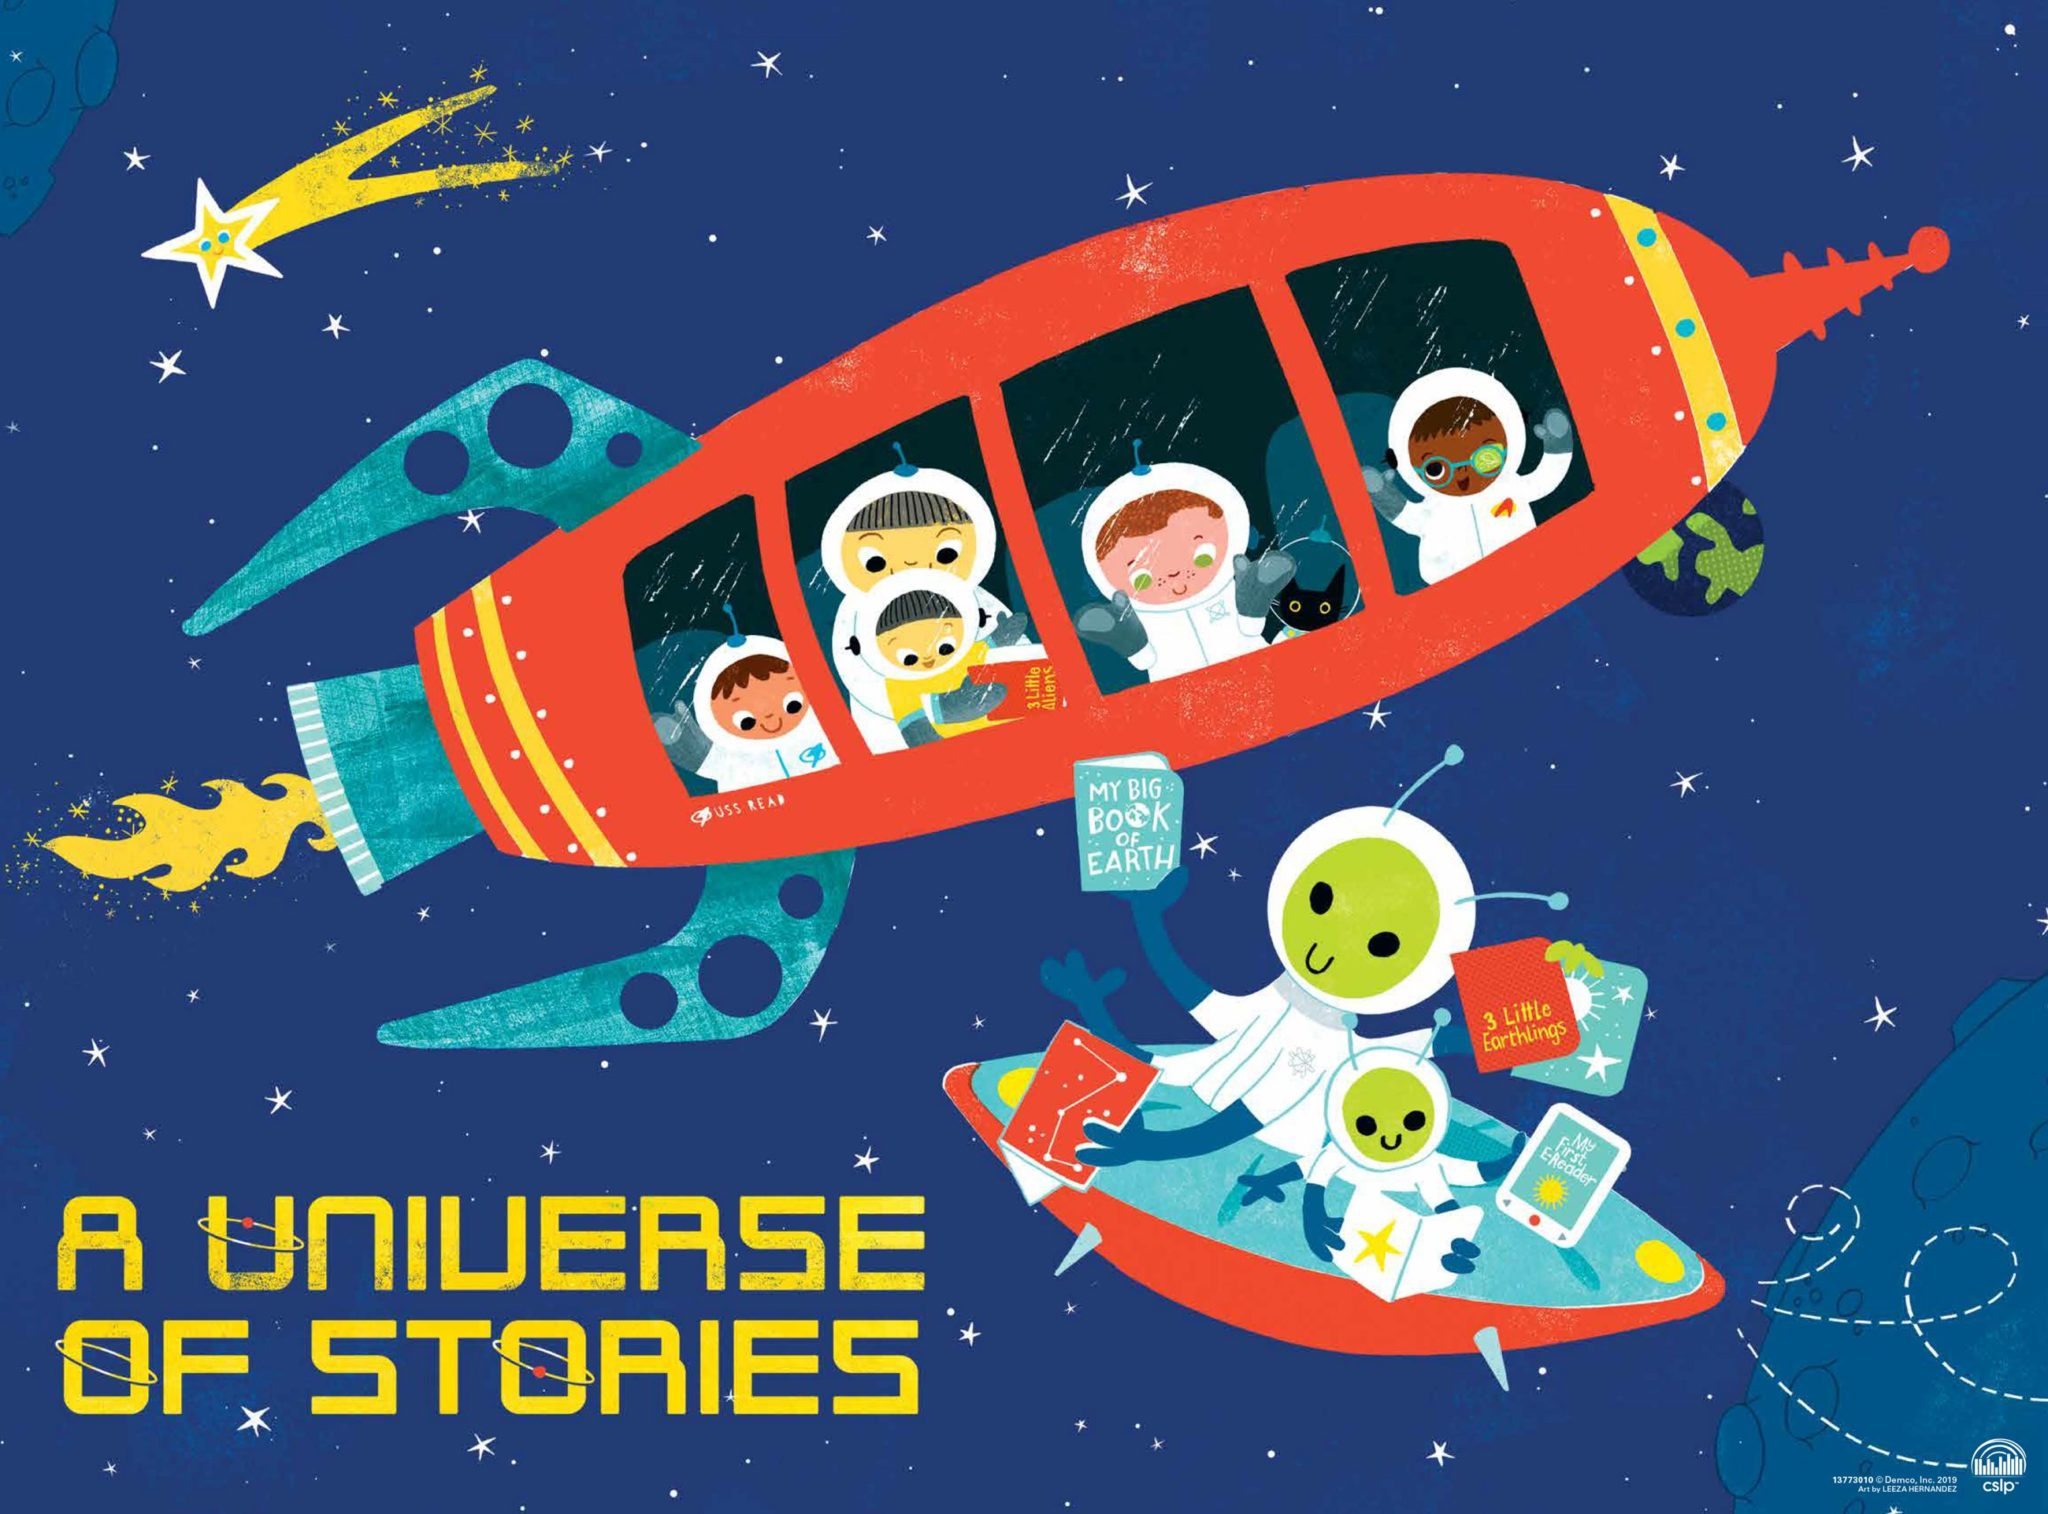 A Universe of Stories Promotes Reading and Learning